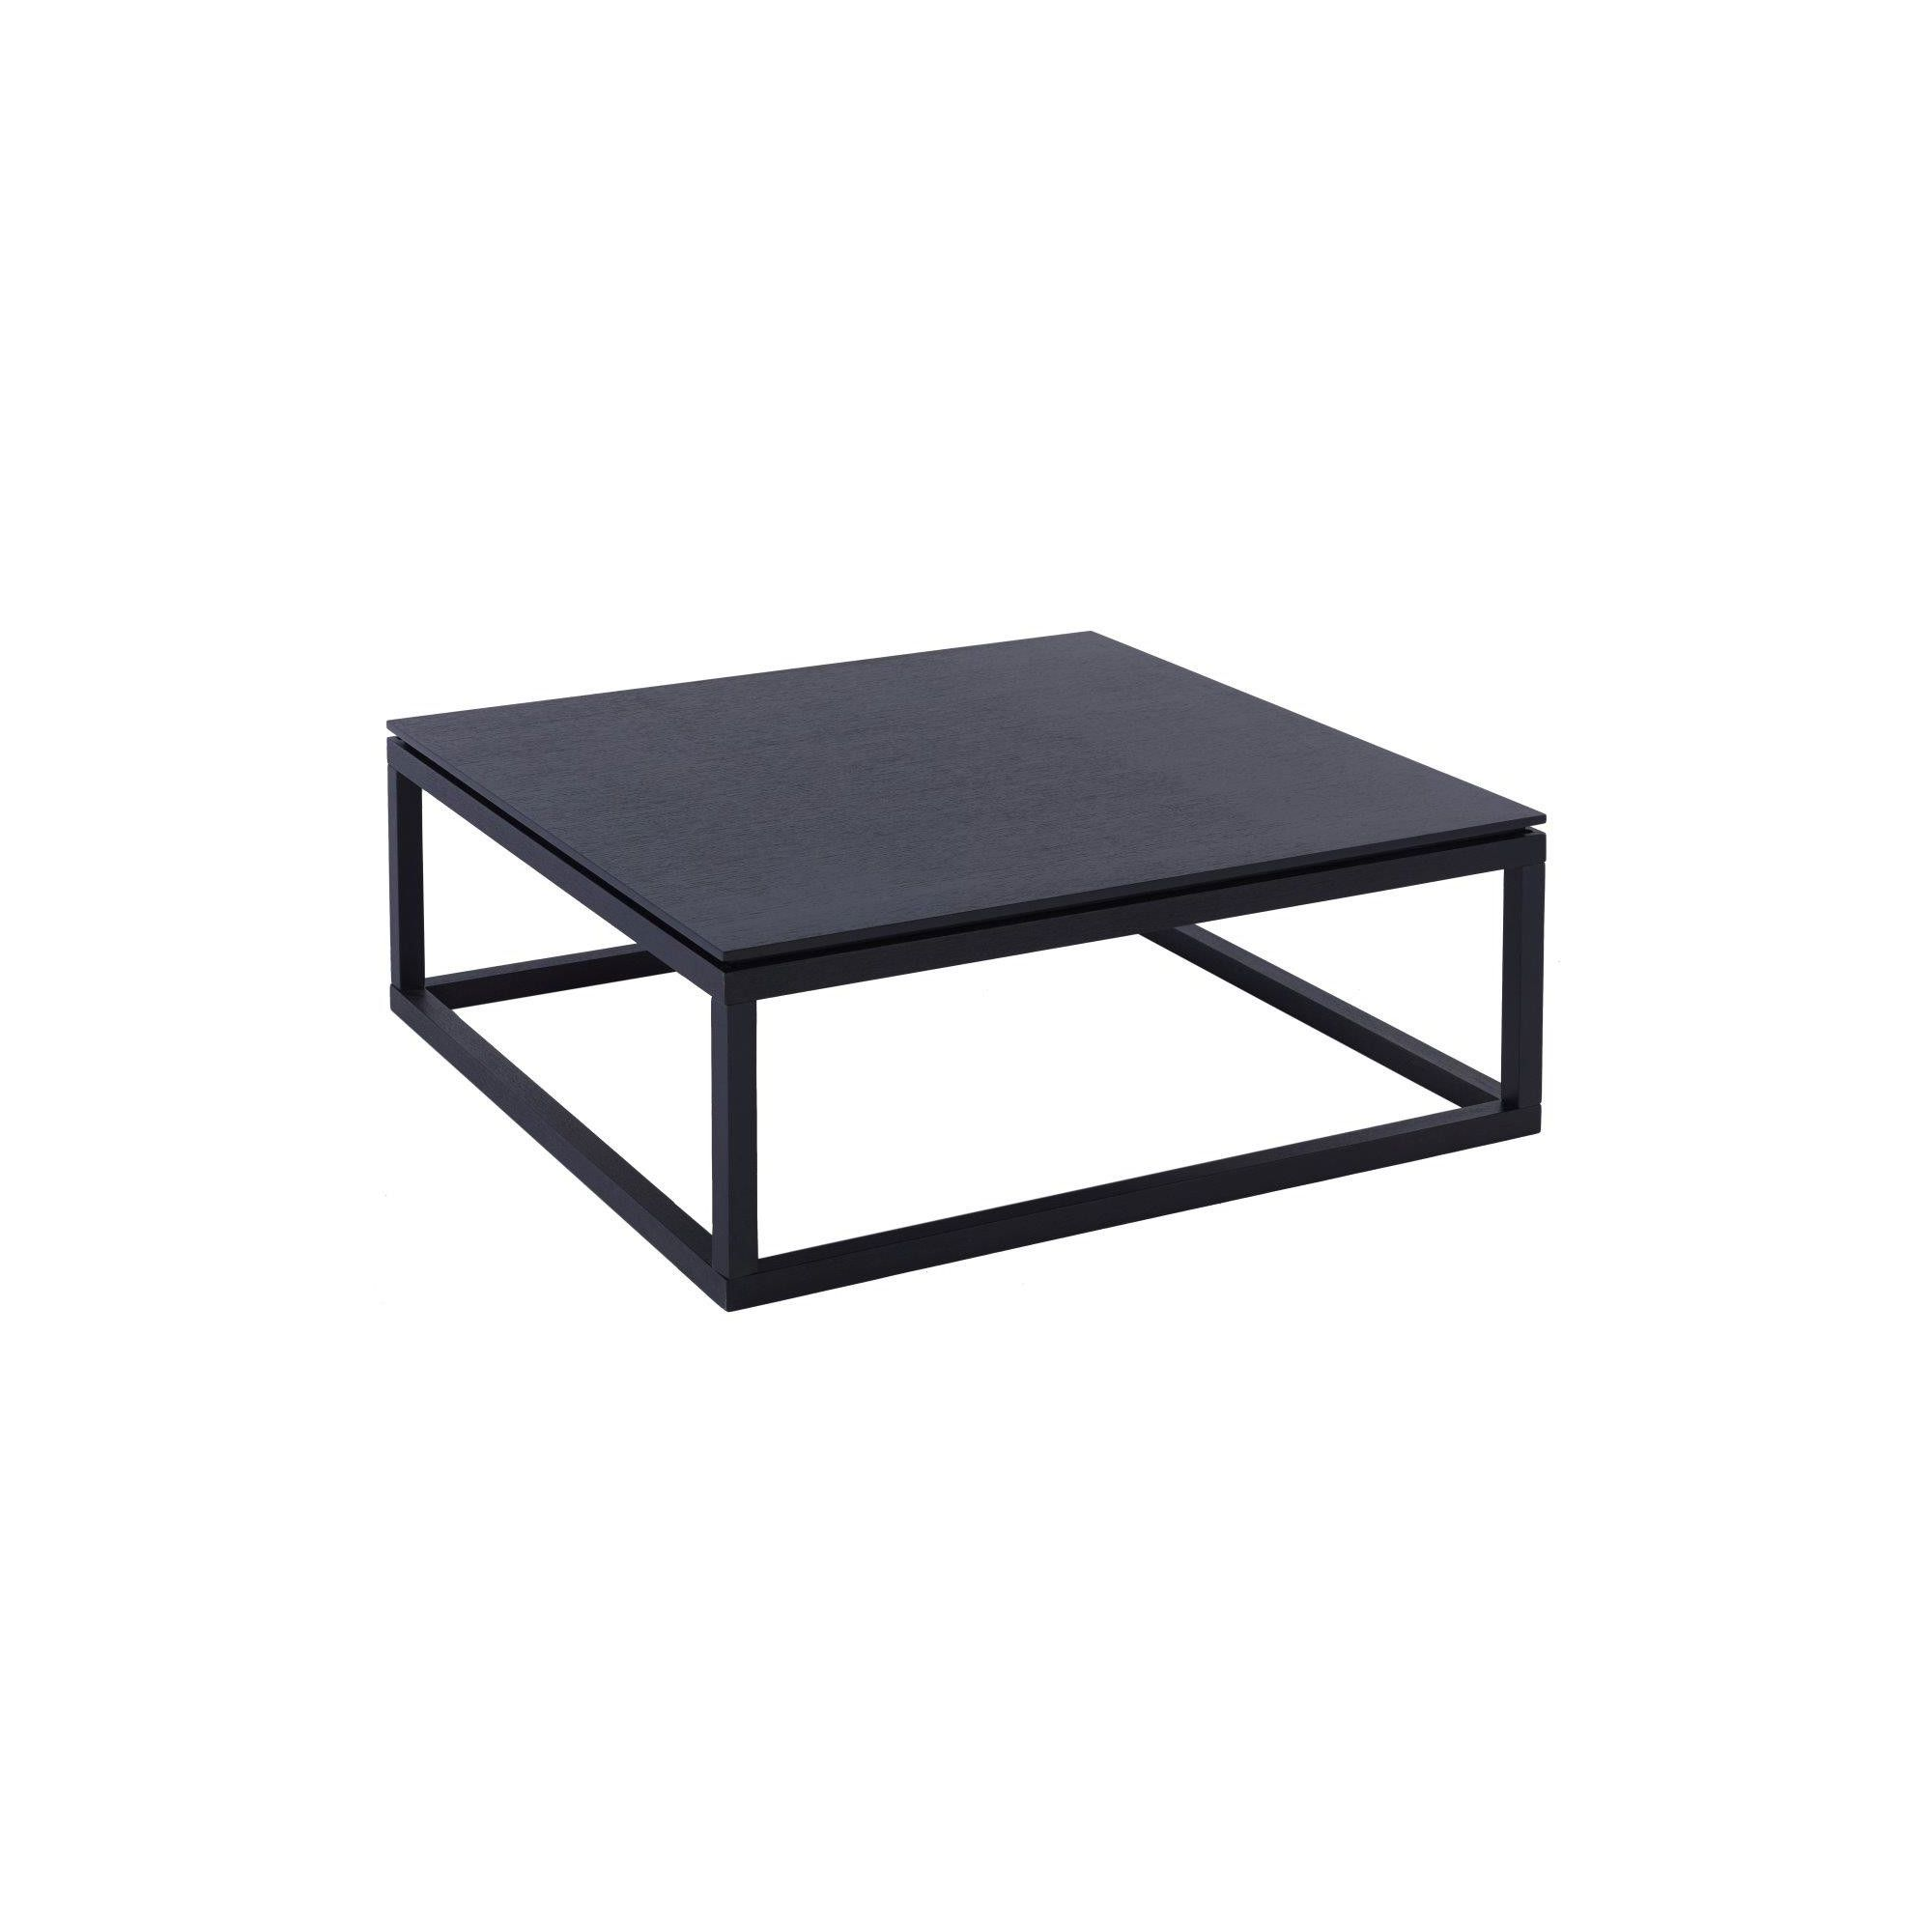 Gillmore Space Cordoba Square Coffee Table in Wenge at Tesco Direct